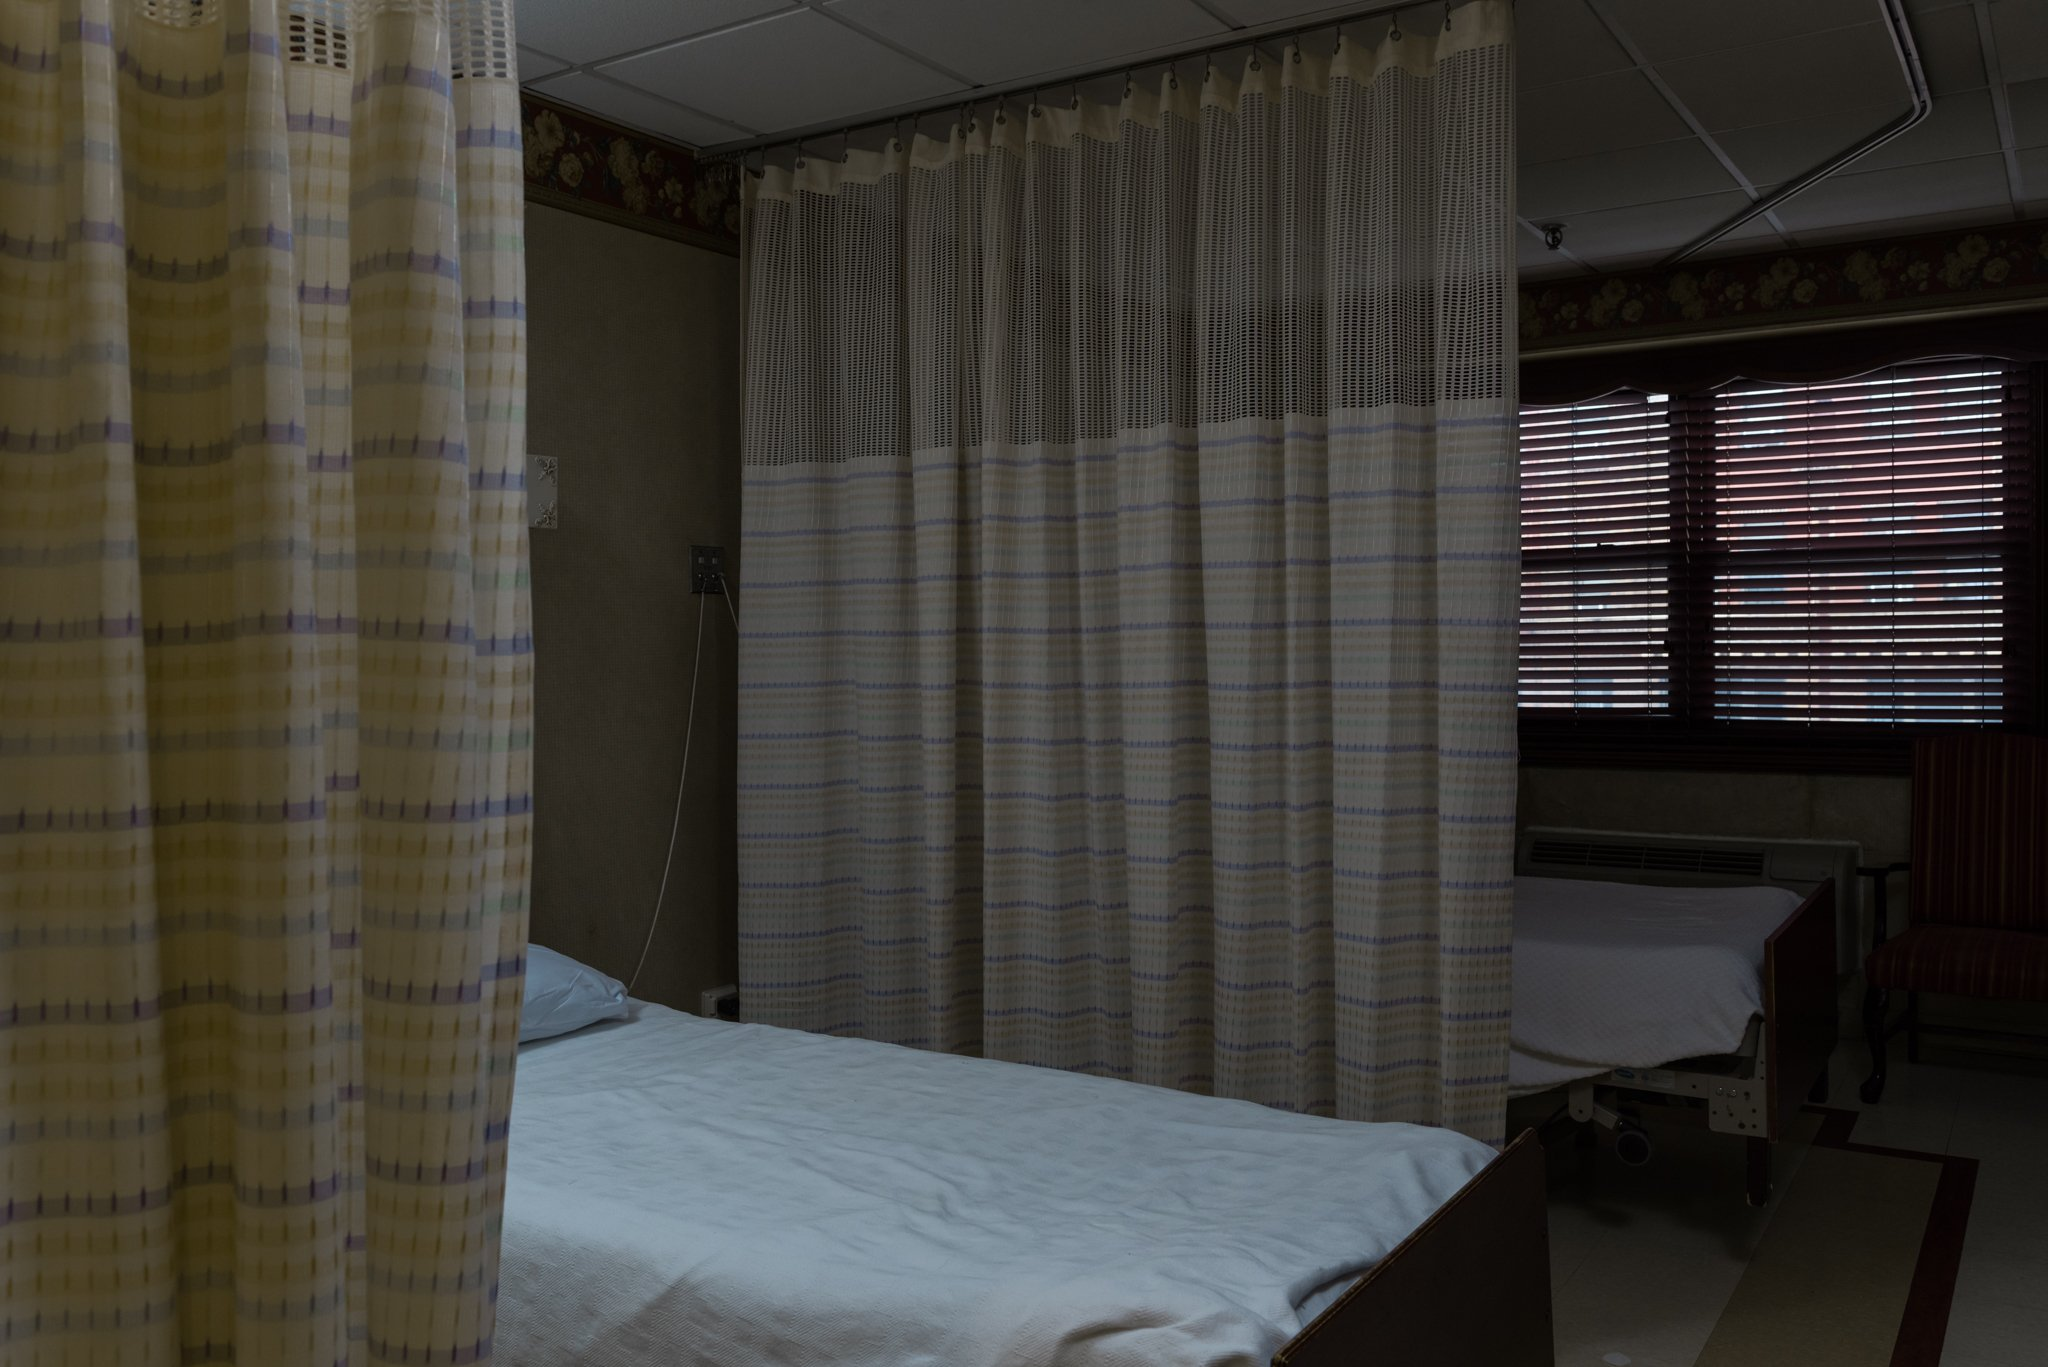 Privacy Curtain For Bedroom Cheap Privacy Hospital Curtain Find Privacy Hospital Curtain